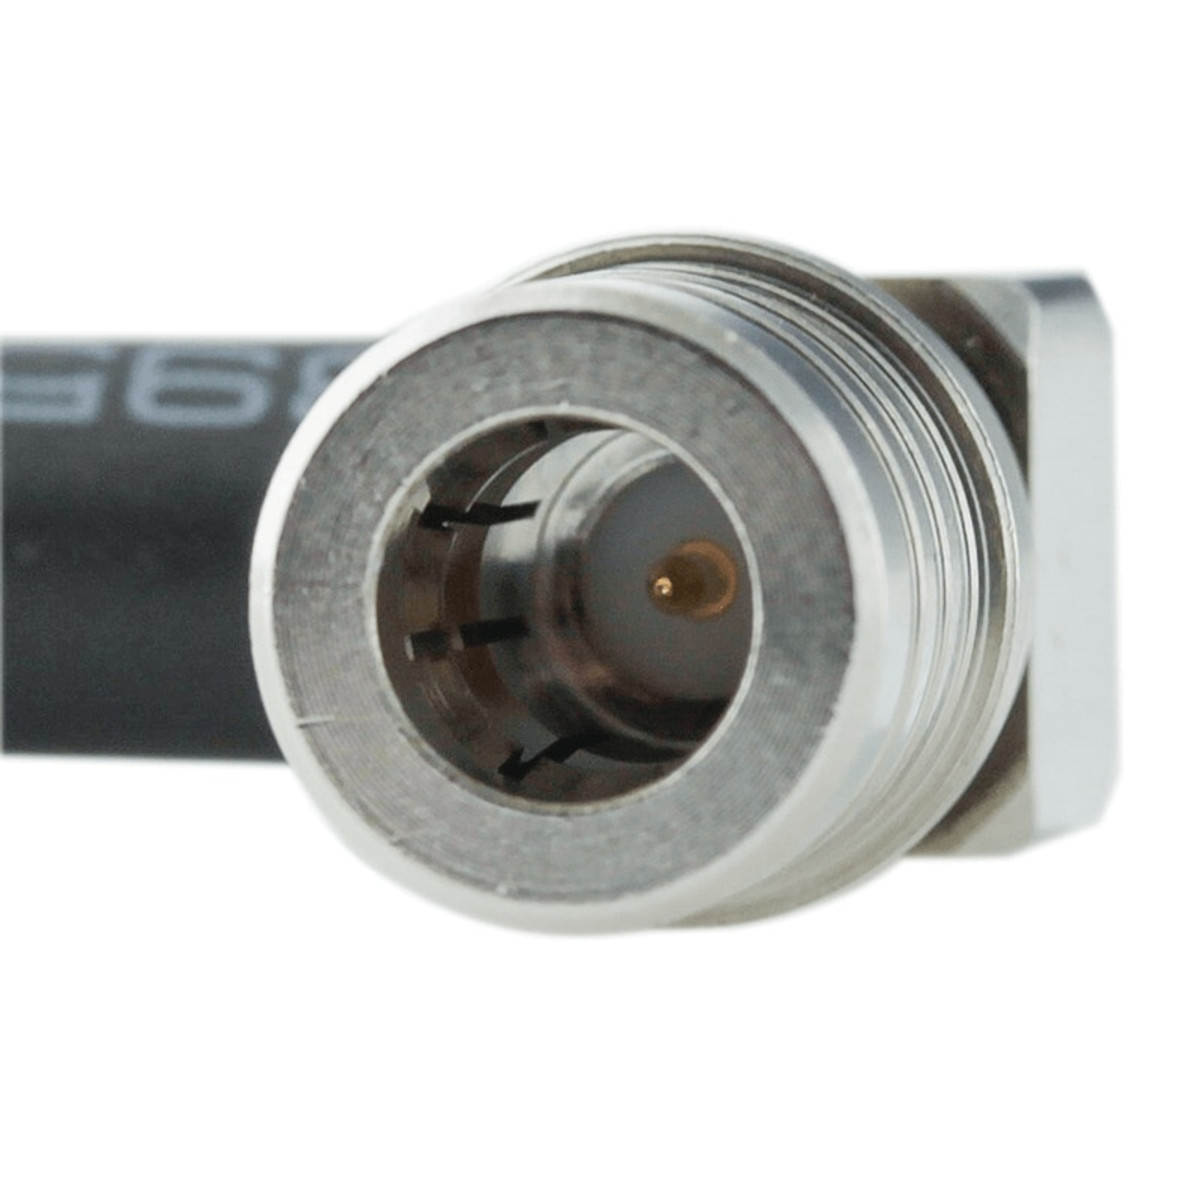 Bolton Technical 2 meter N-Male Bulkhead to QMA-Male Angle Coax RF Pigtail Cable